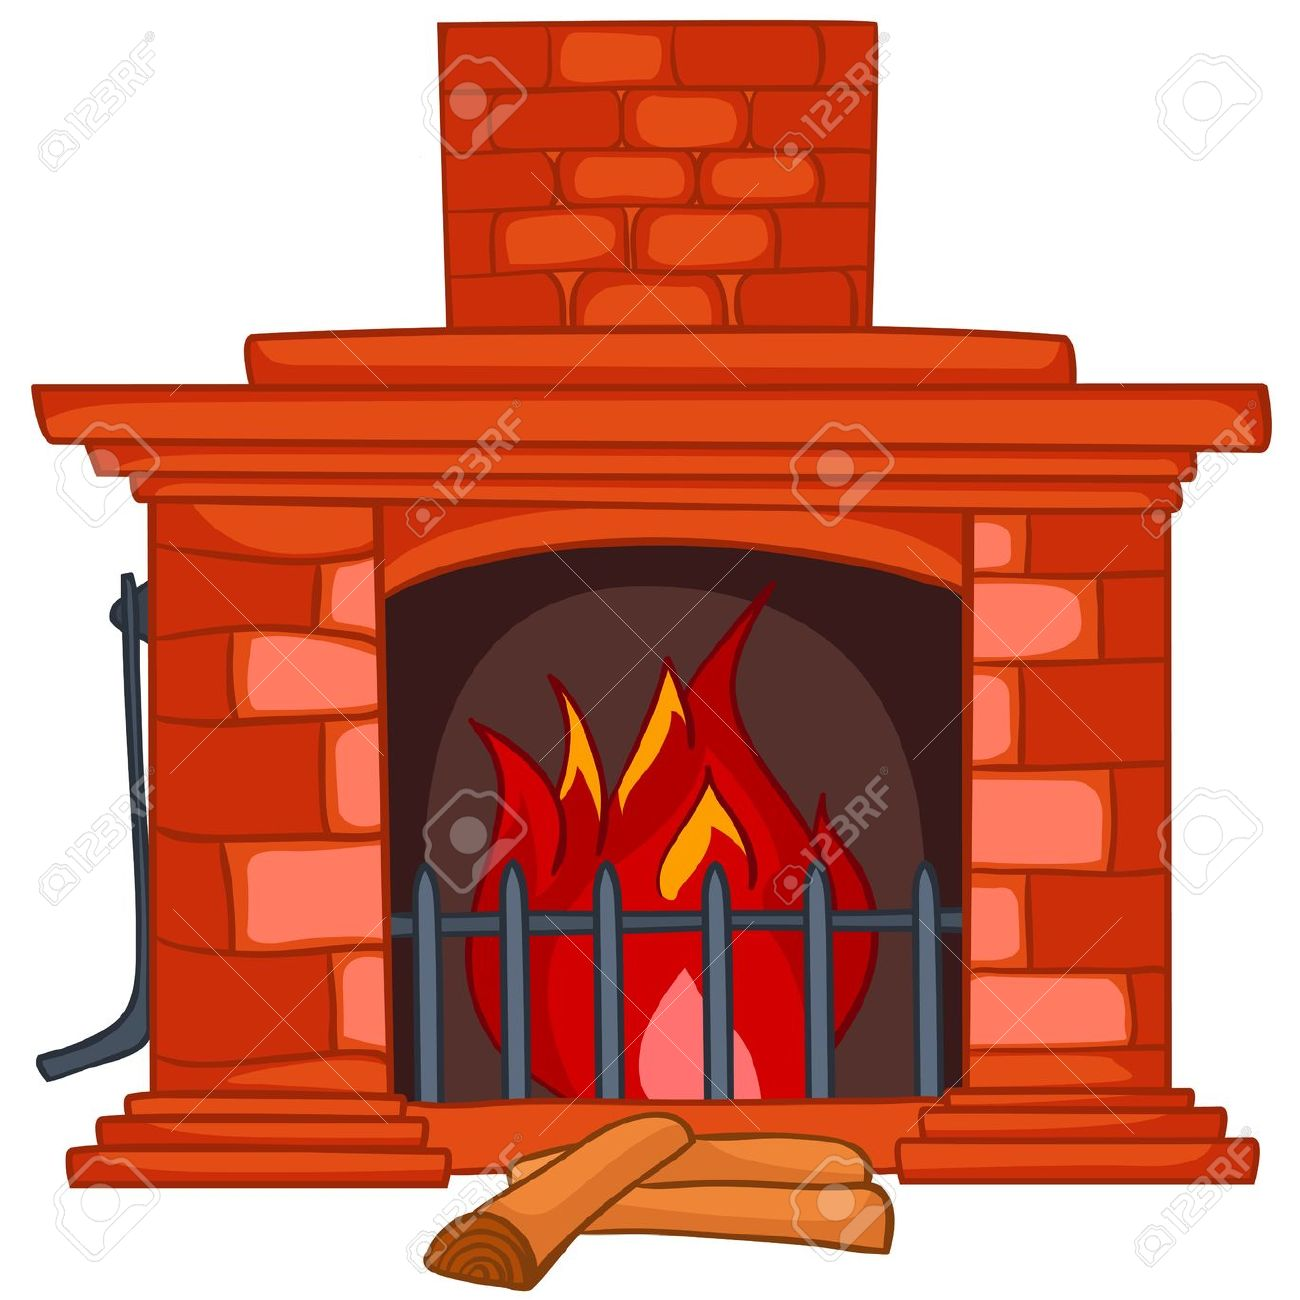 Chimneys clipart #1